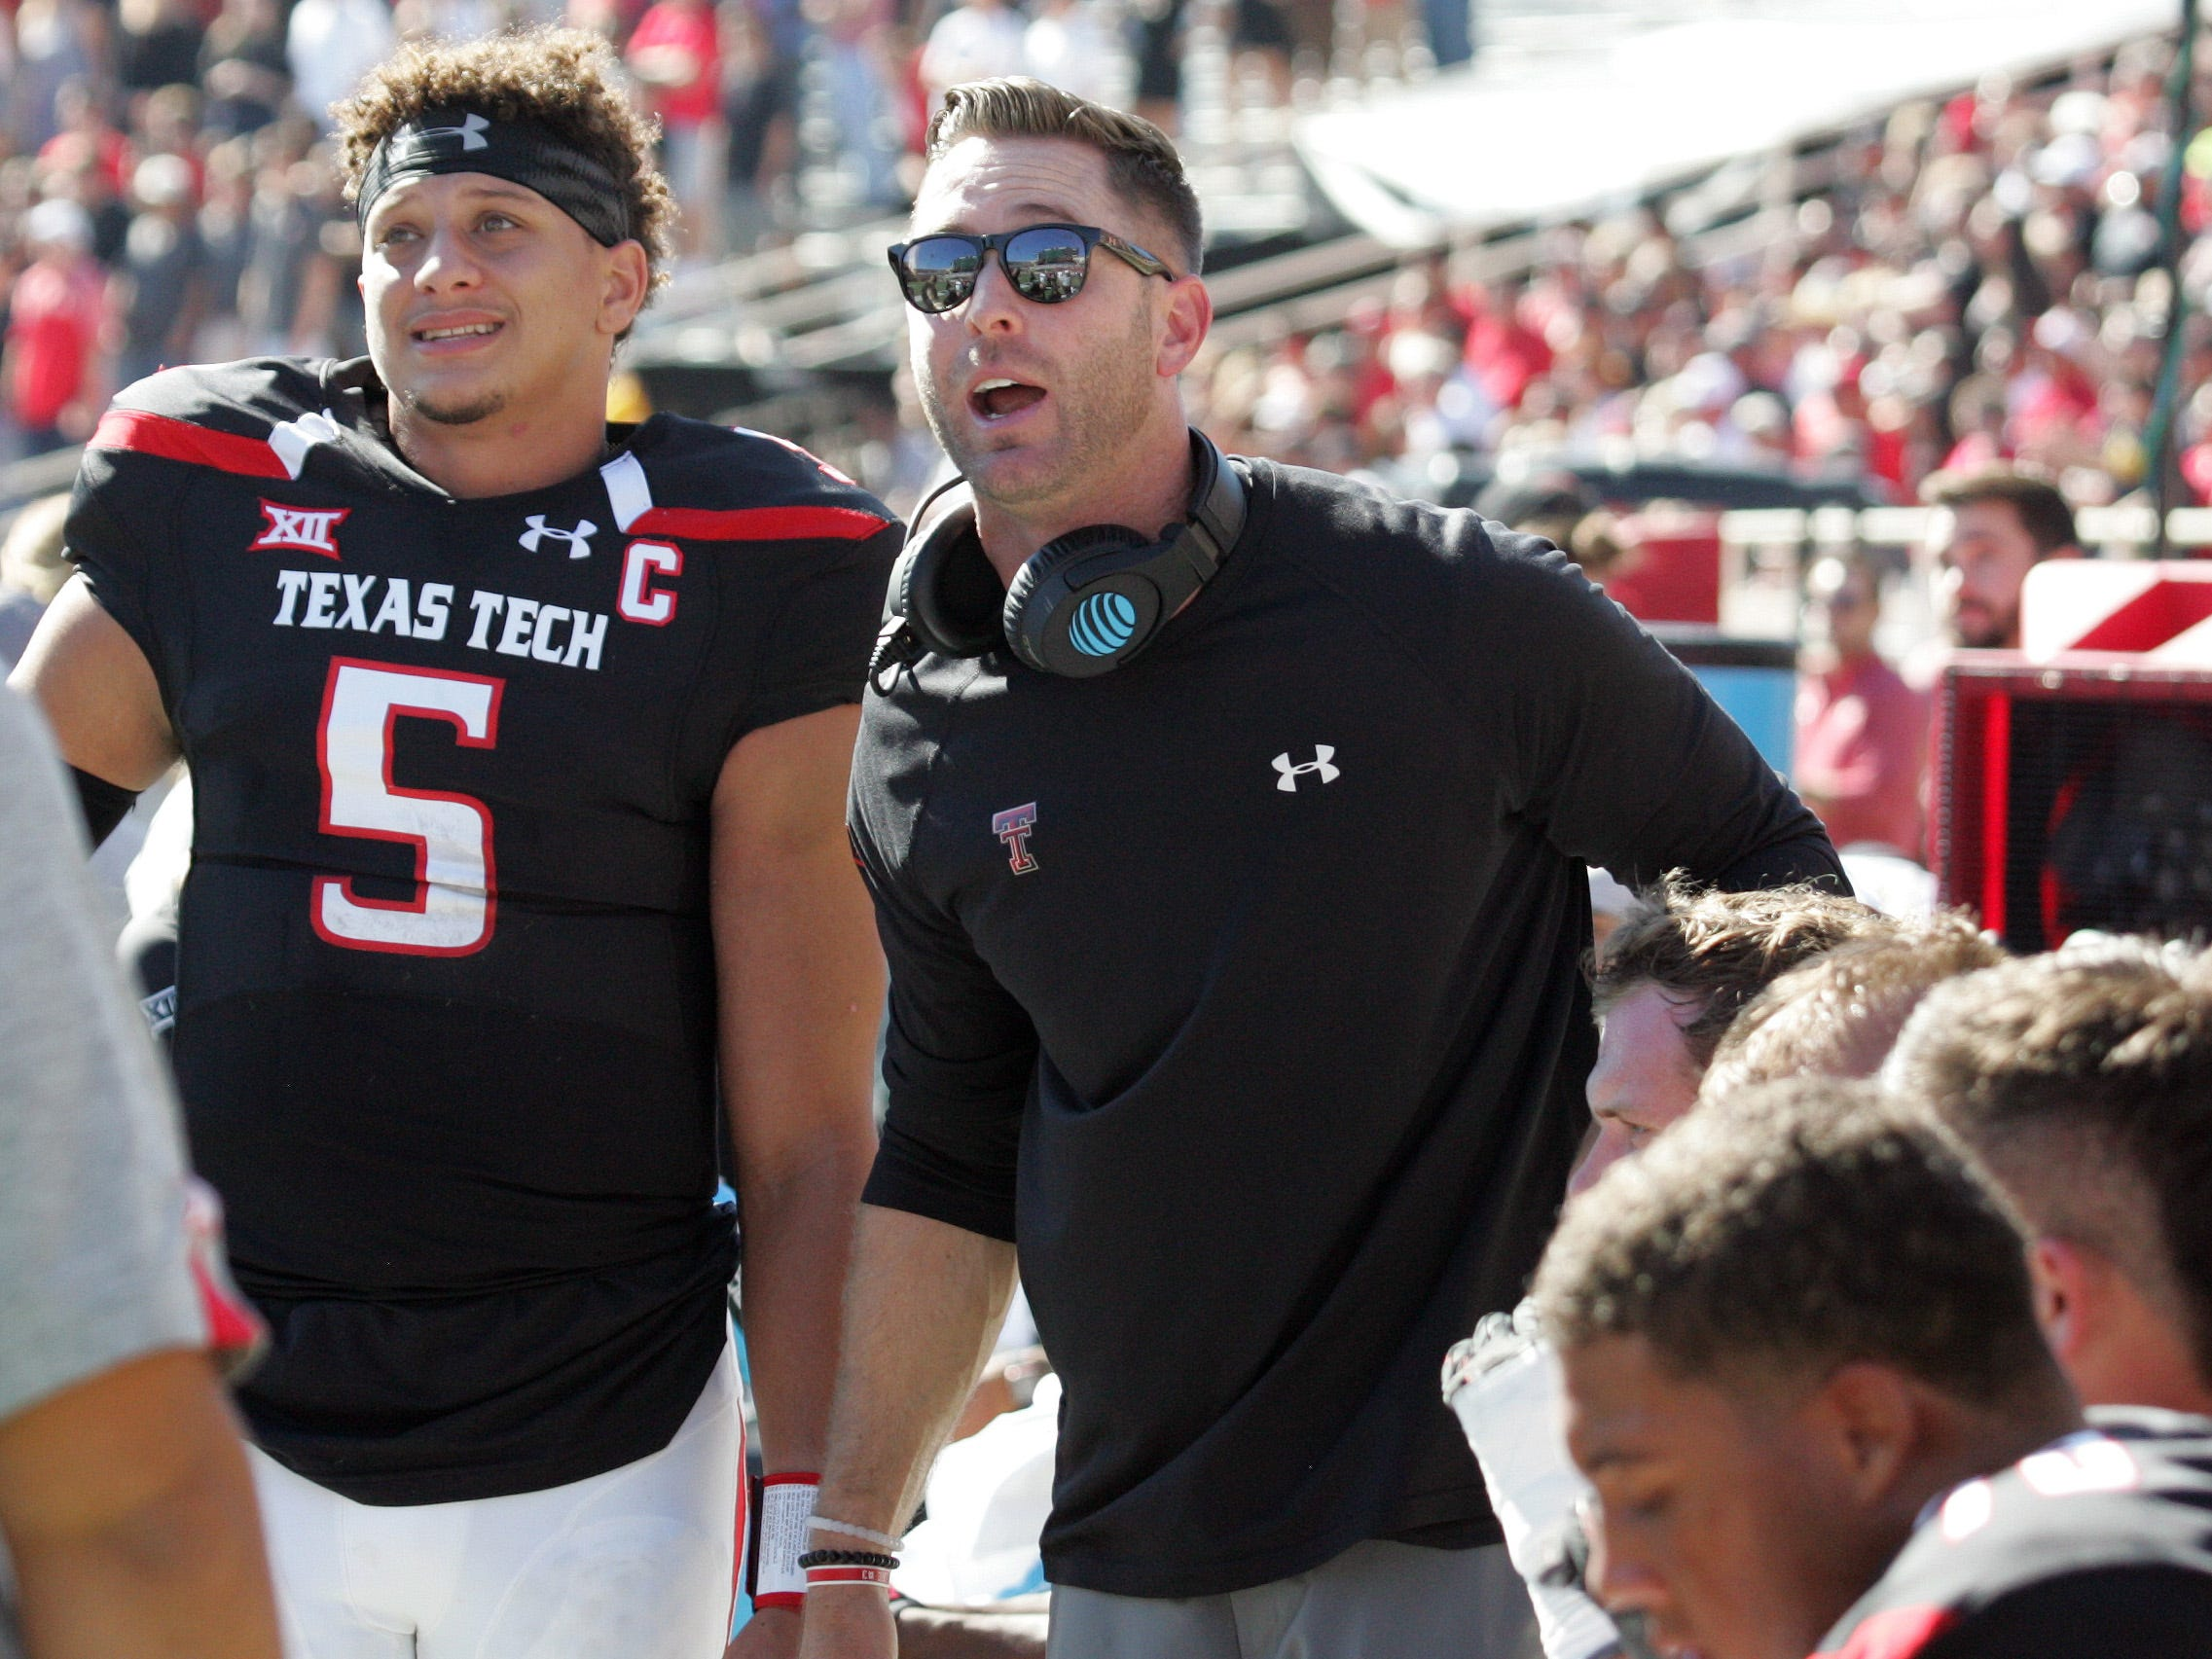 Texas Tech head coach Kliff Kingsbury and quarterback Patrick Mahomes watch a replay on the video board during a game against West Virginia.